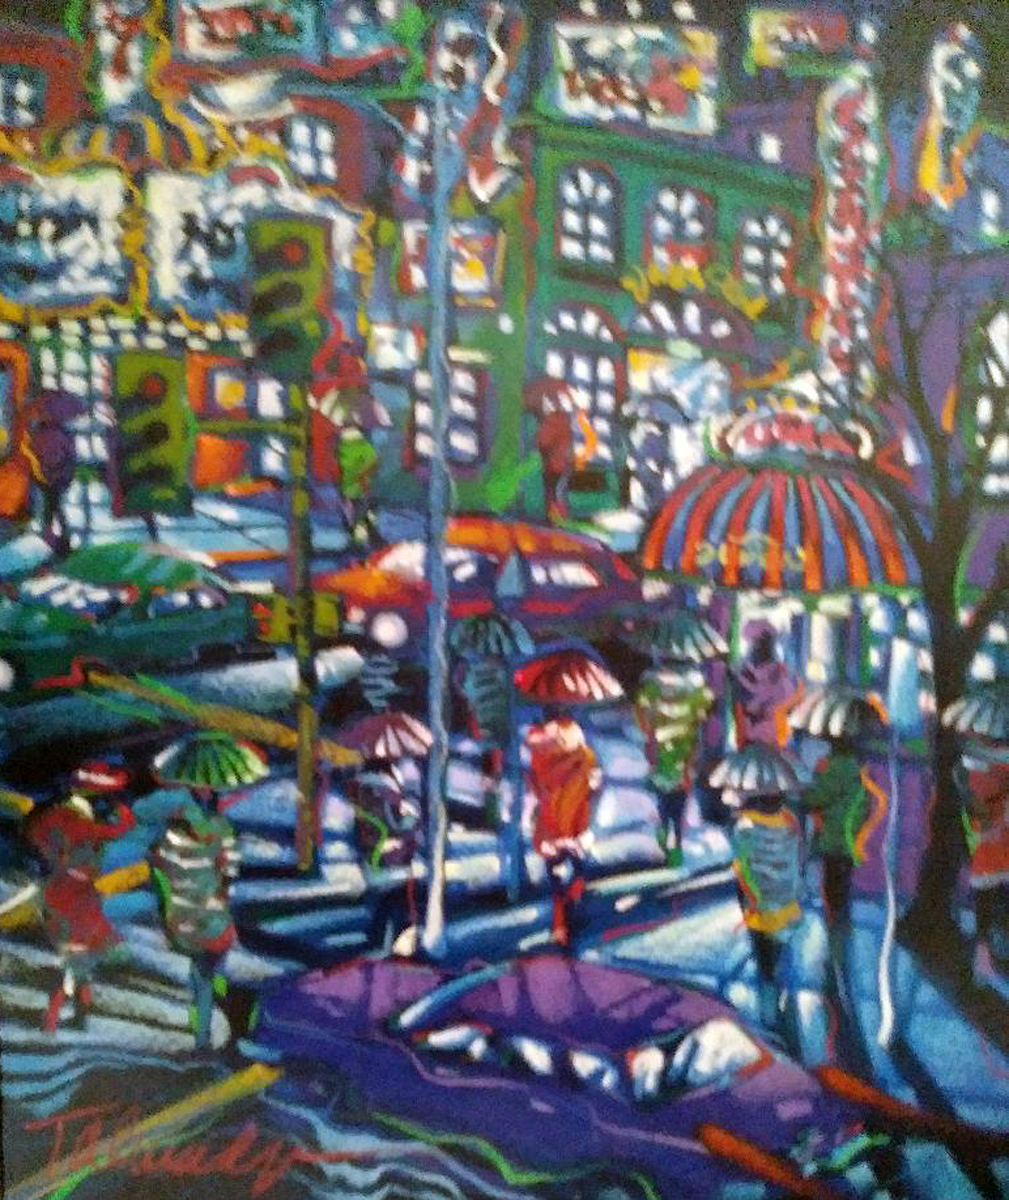 City Exploring And Rainy Night, Set of 2 Paintings  1996 29x25